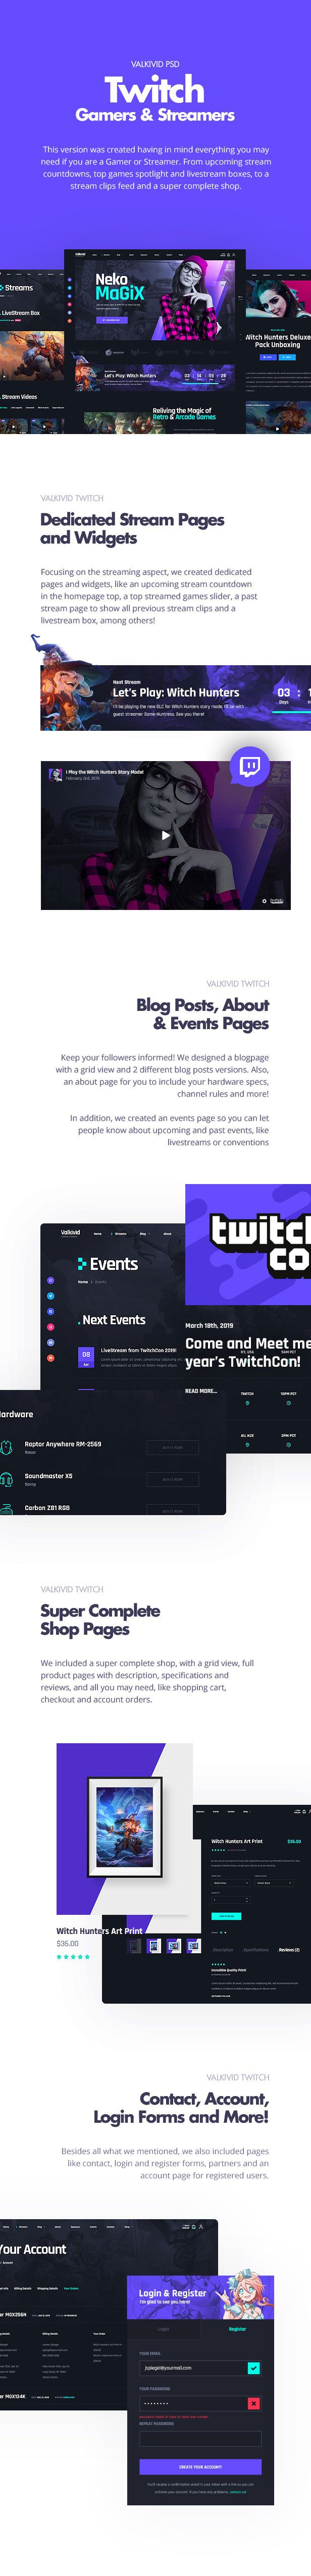 Valkivid - Streamer and Youtuber PSD Template - 11